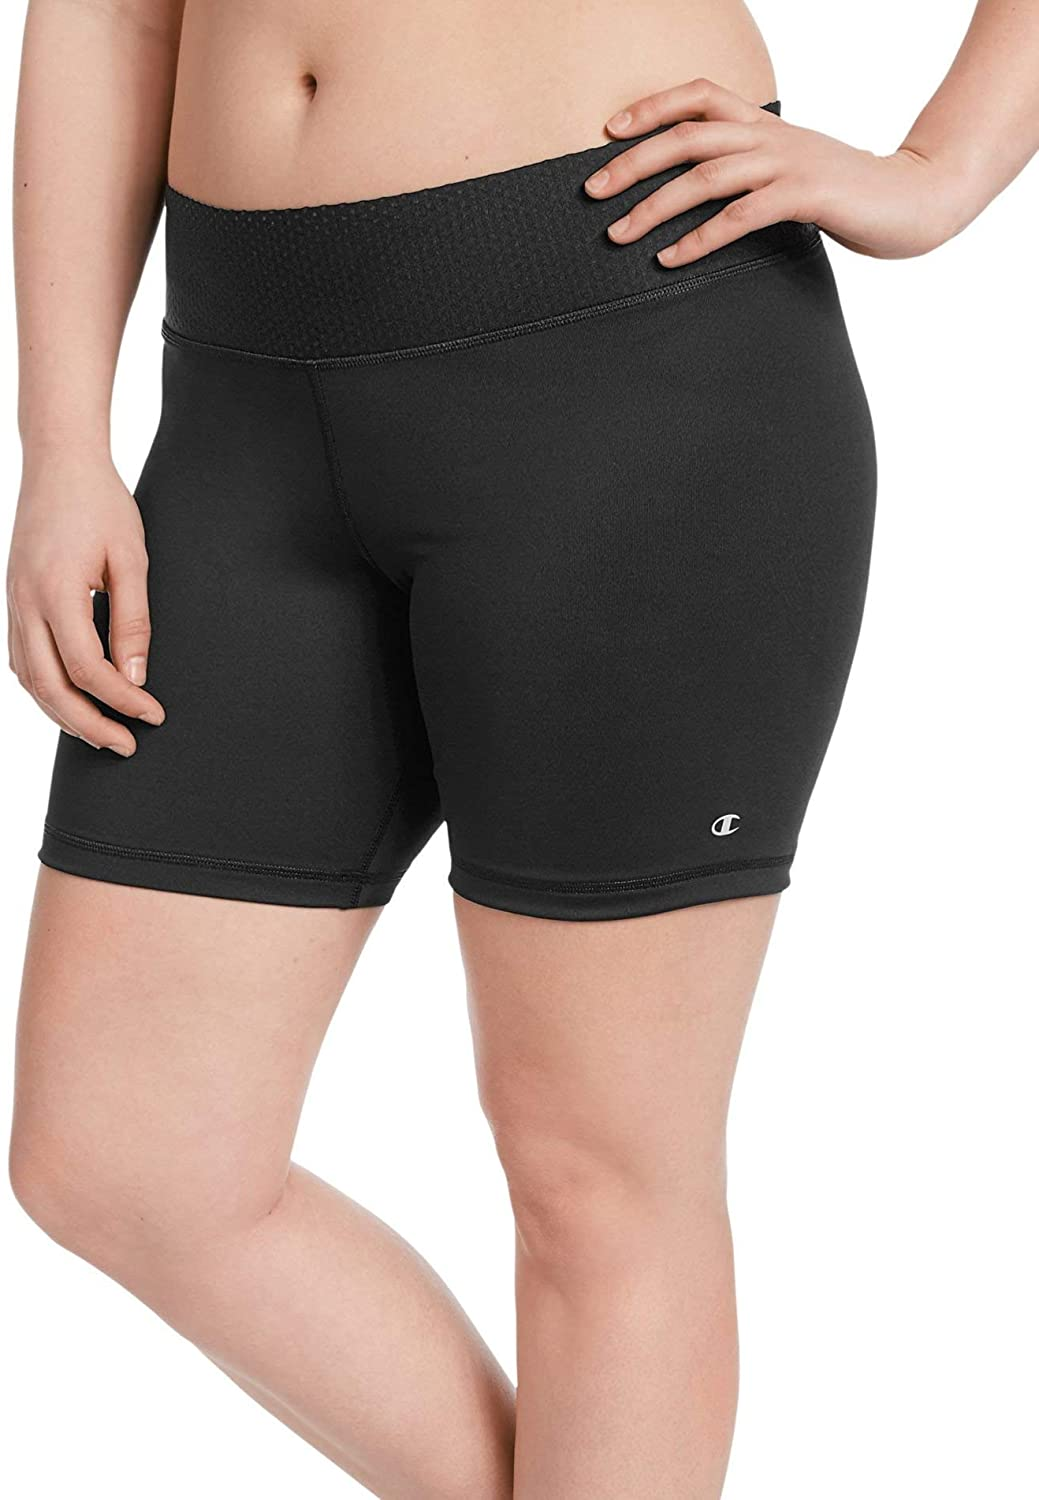 Champion Women's Plus Size Absolute Short with SmoothTec Waistband